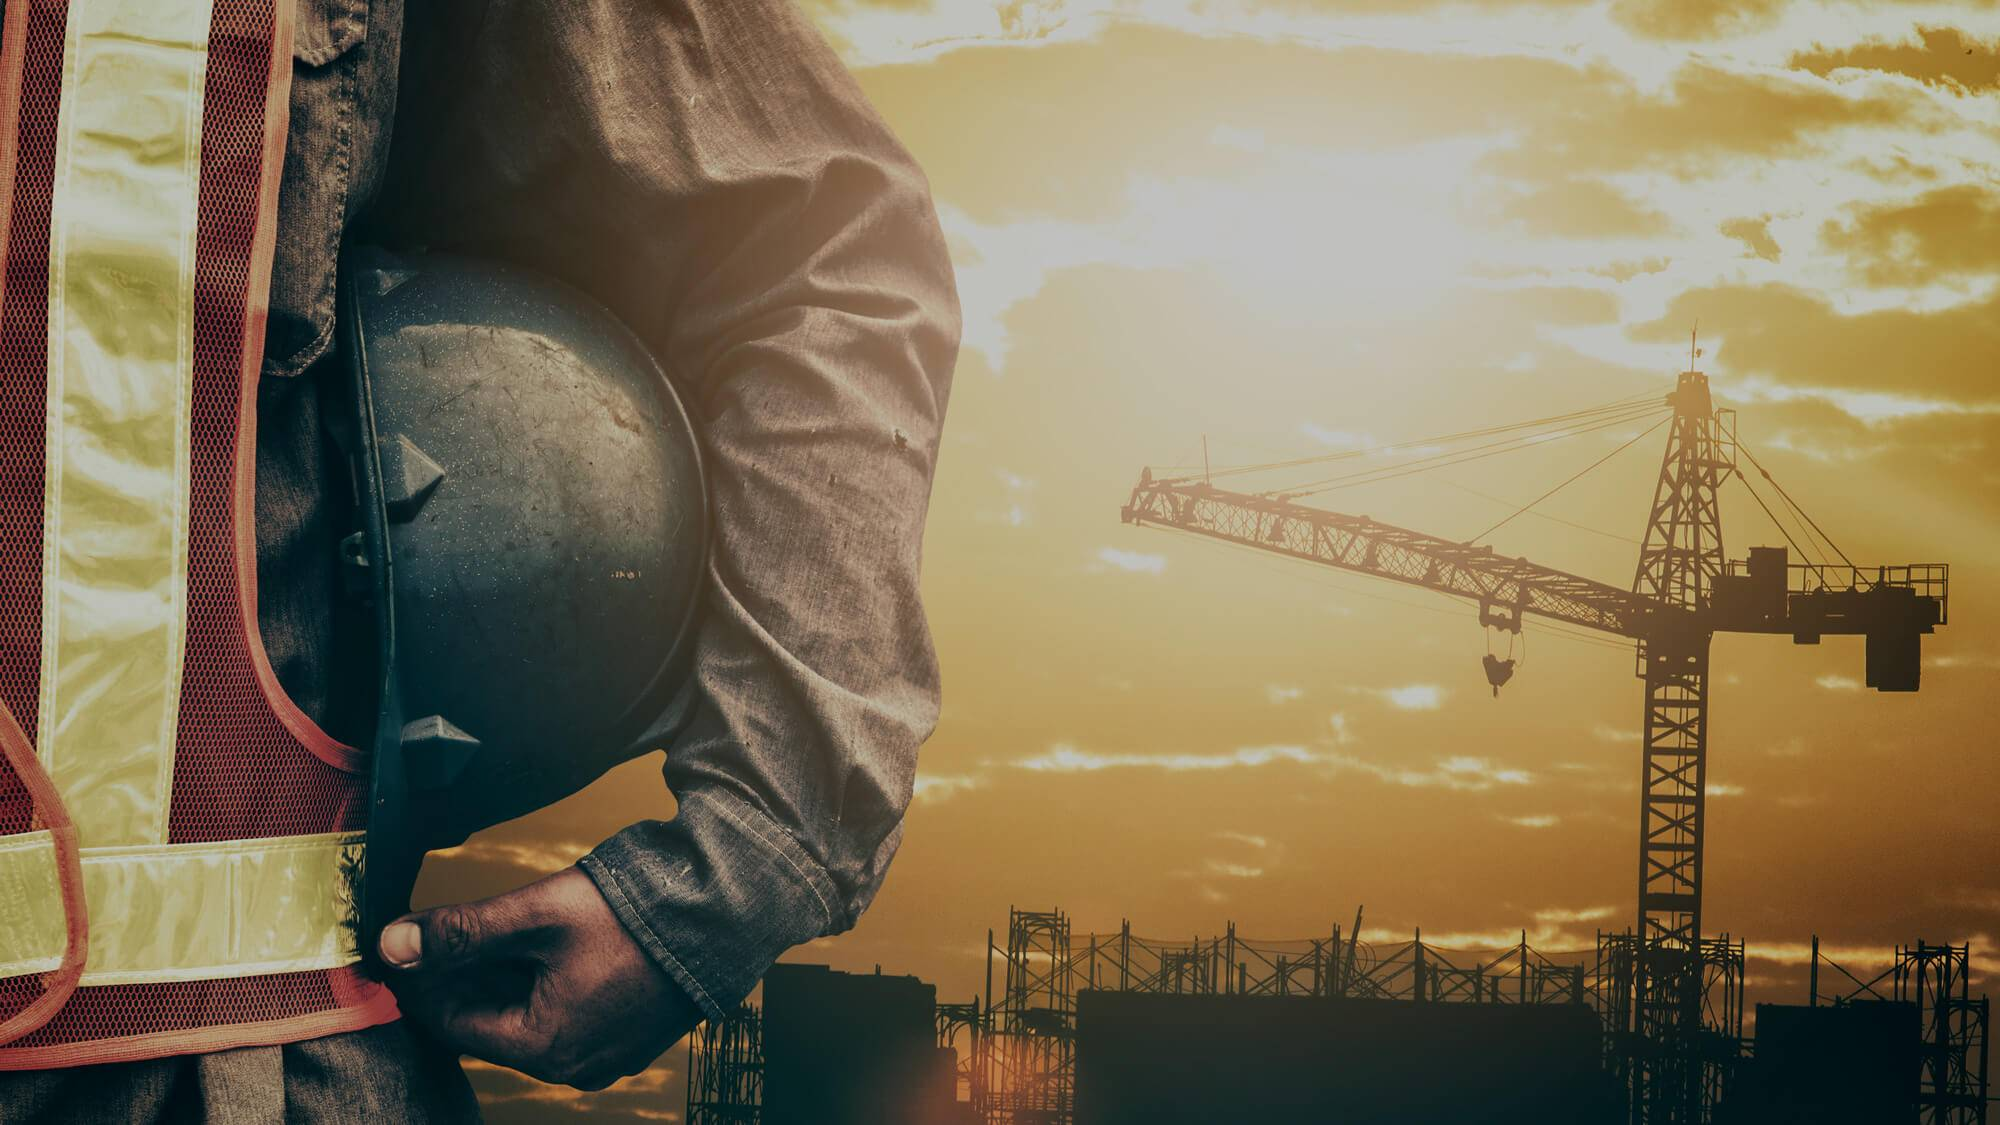 A picture of a man holding a hard hat on his side with a large crane in the background.